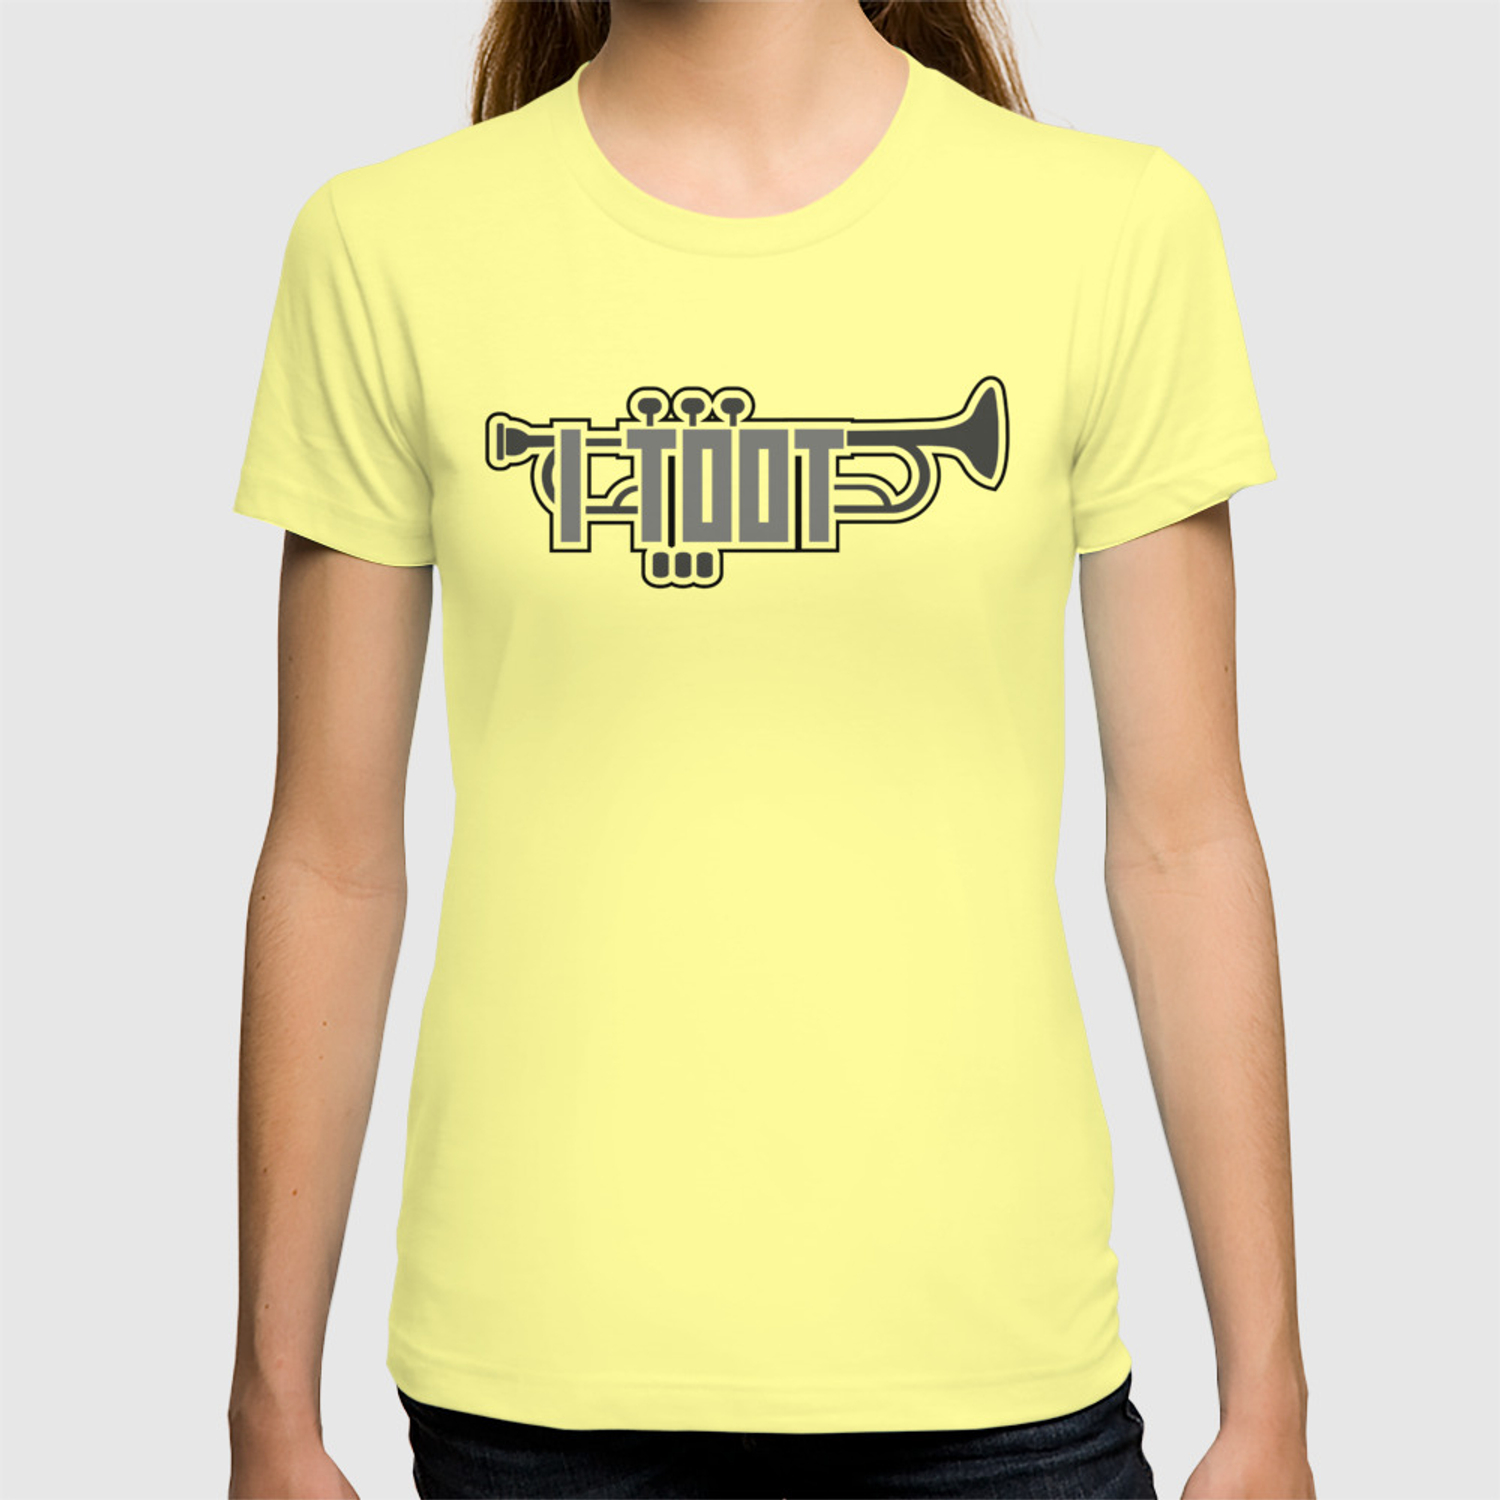 76788a34 Funny Trumpet Player Gift for Trumpeters, Musicians and Instrument Players  T-shirt by martinos74 | Society6